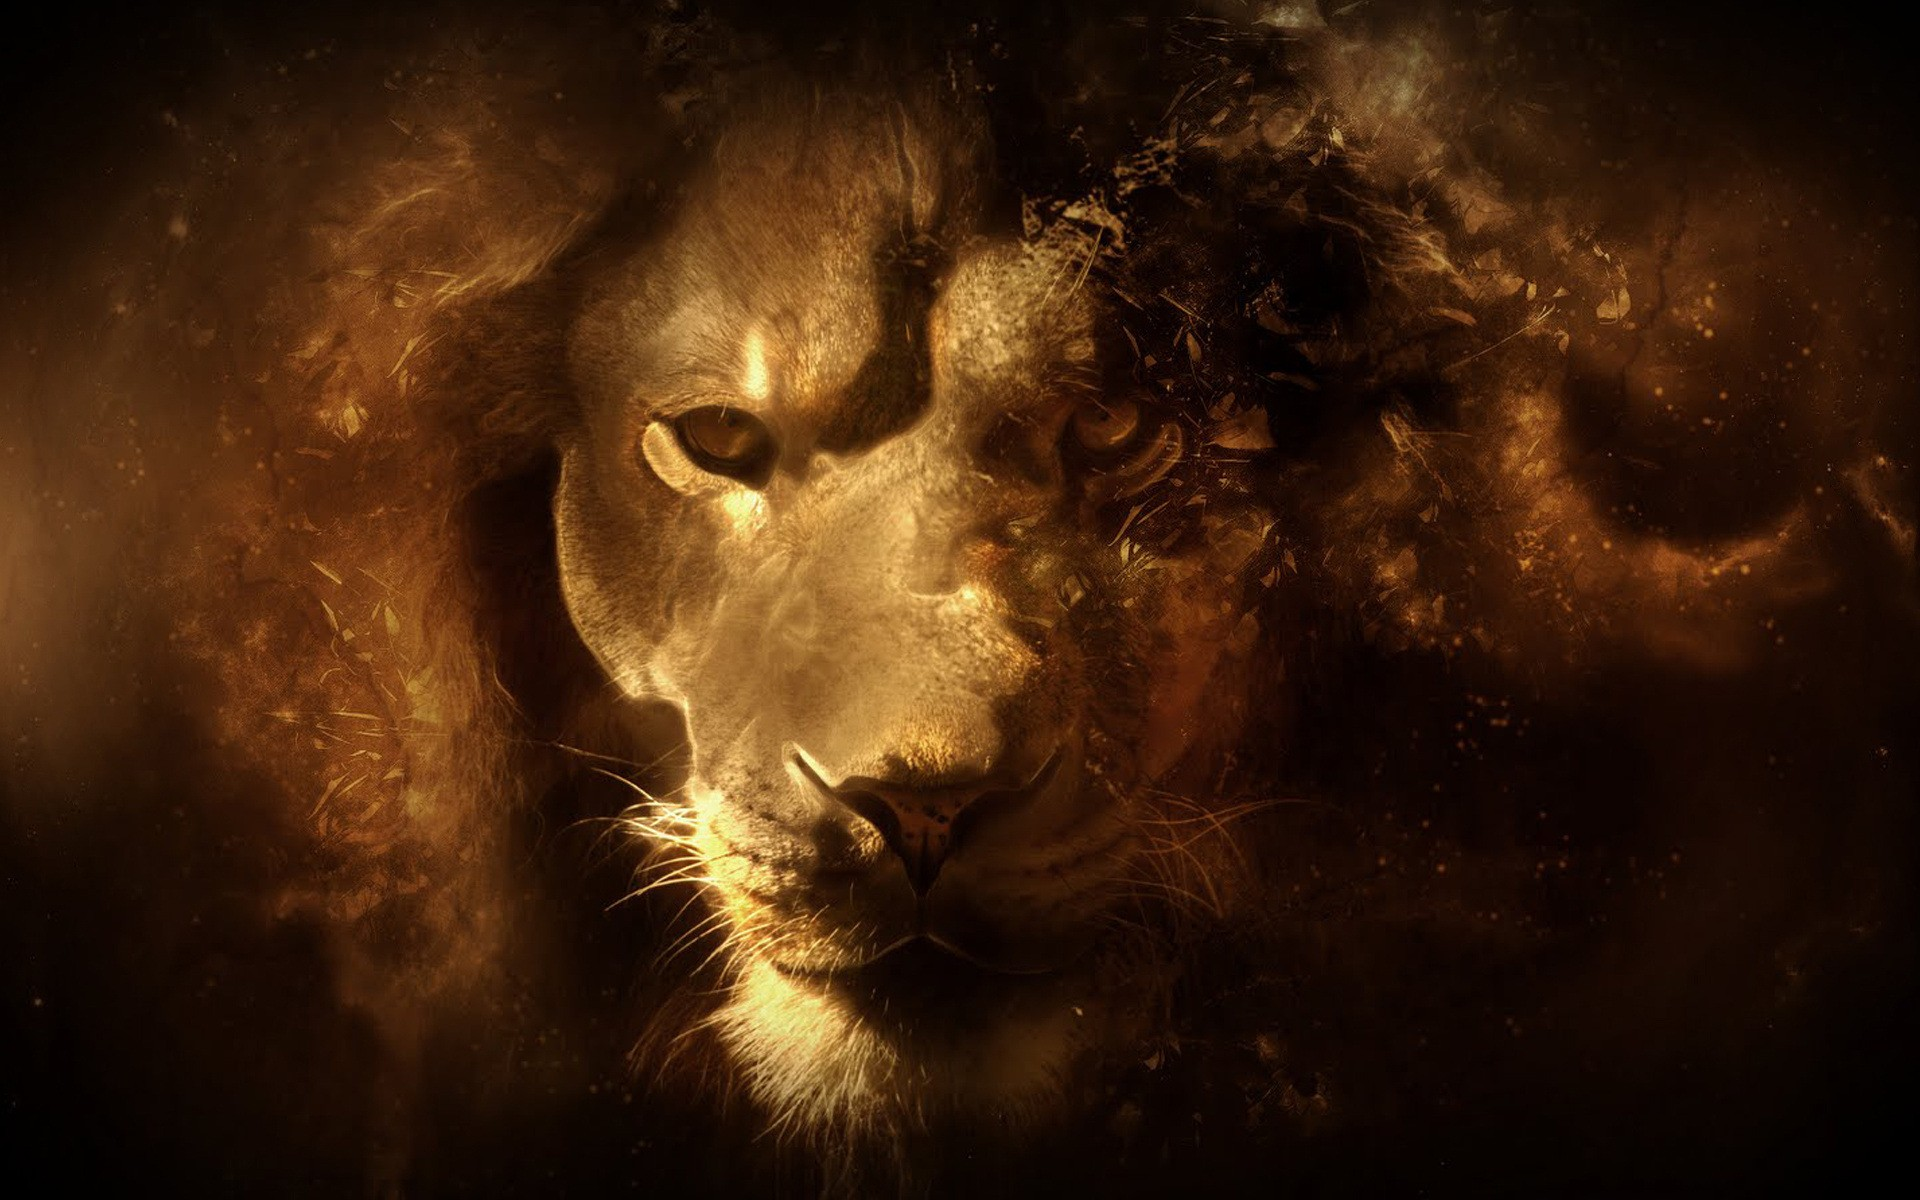 Lion Art Desktop Wallpaper